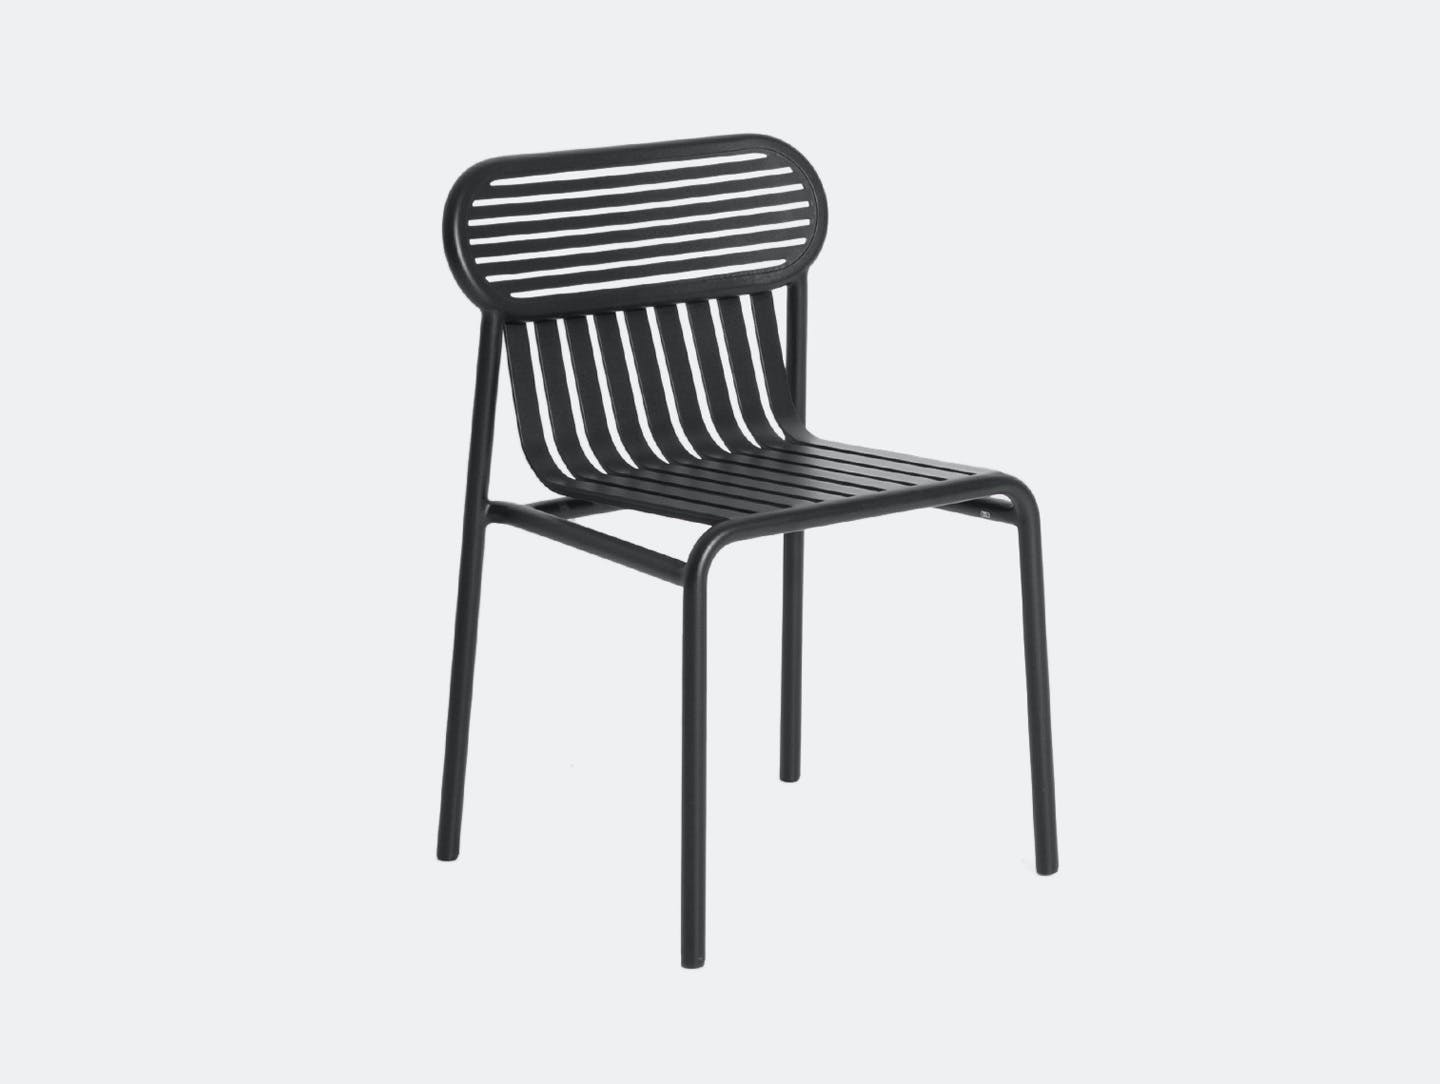 Petite Friture Week End Outdoor Side Chair black Studio Brichet Ziegler